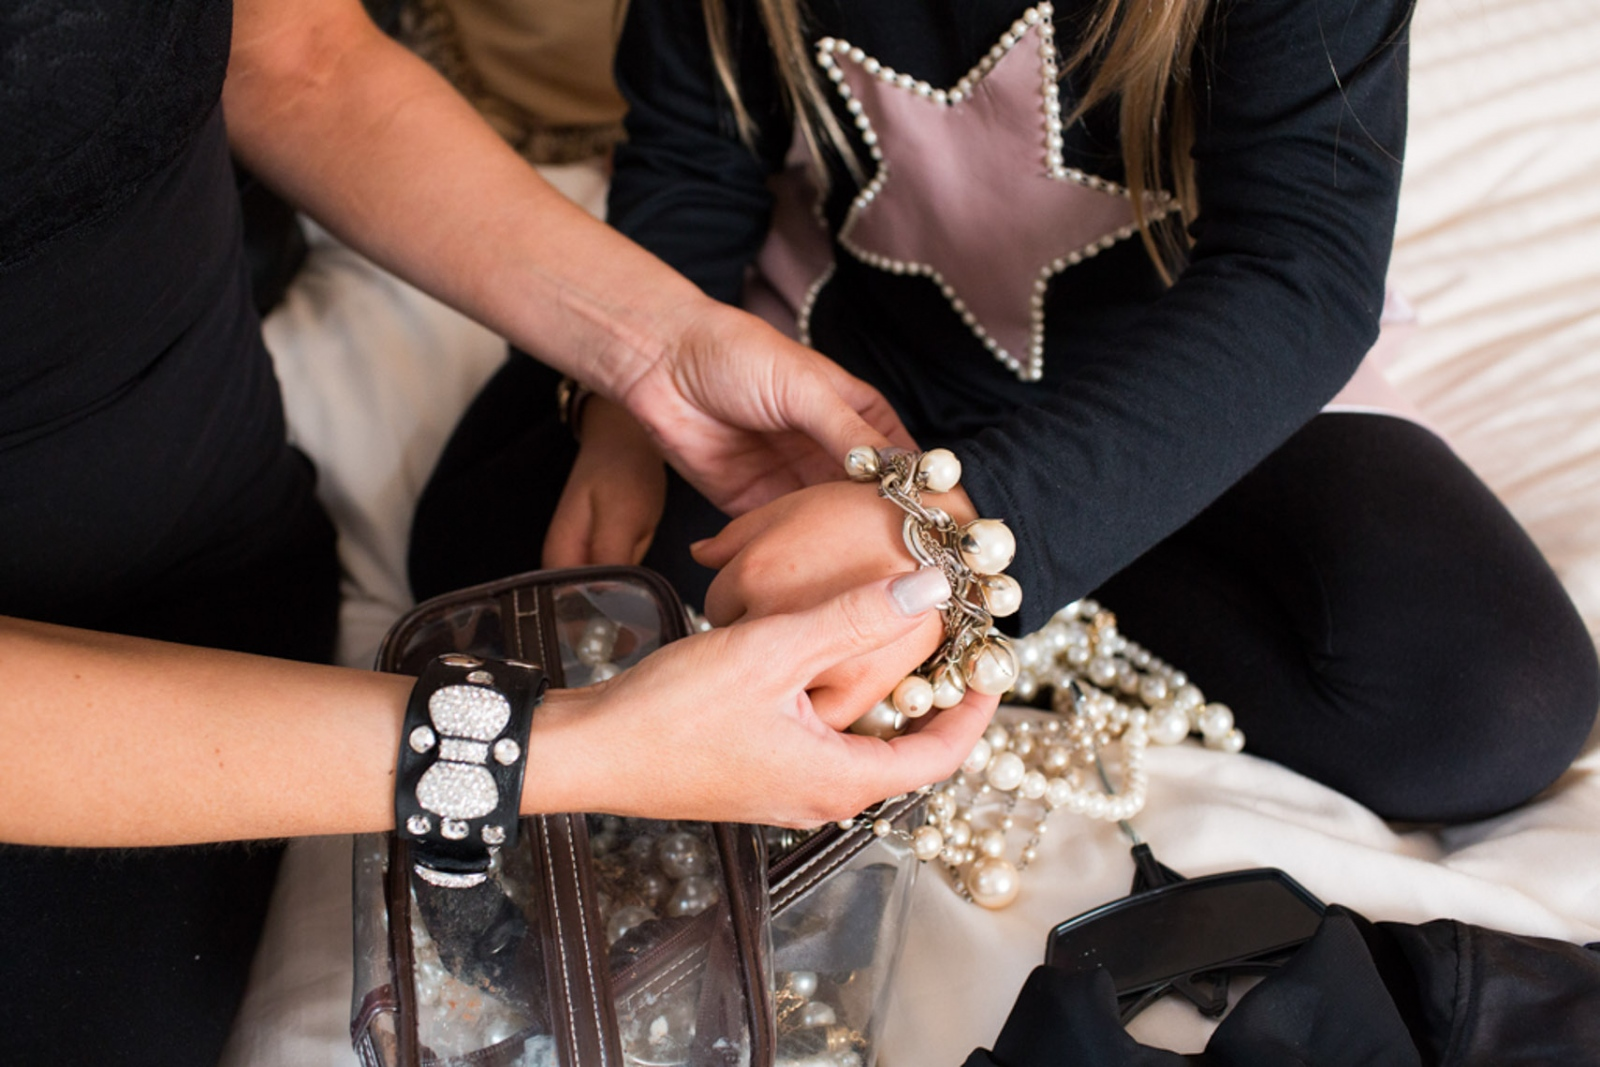 Isabella tries on accessories from her clothing line Bound by the Crown at New York Fashion Week For Nido Magazine